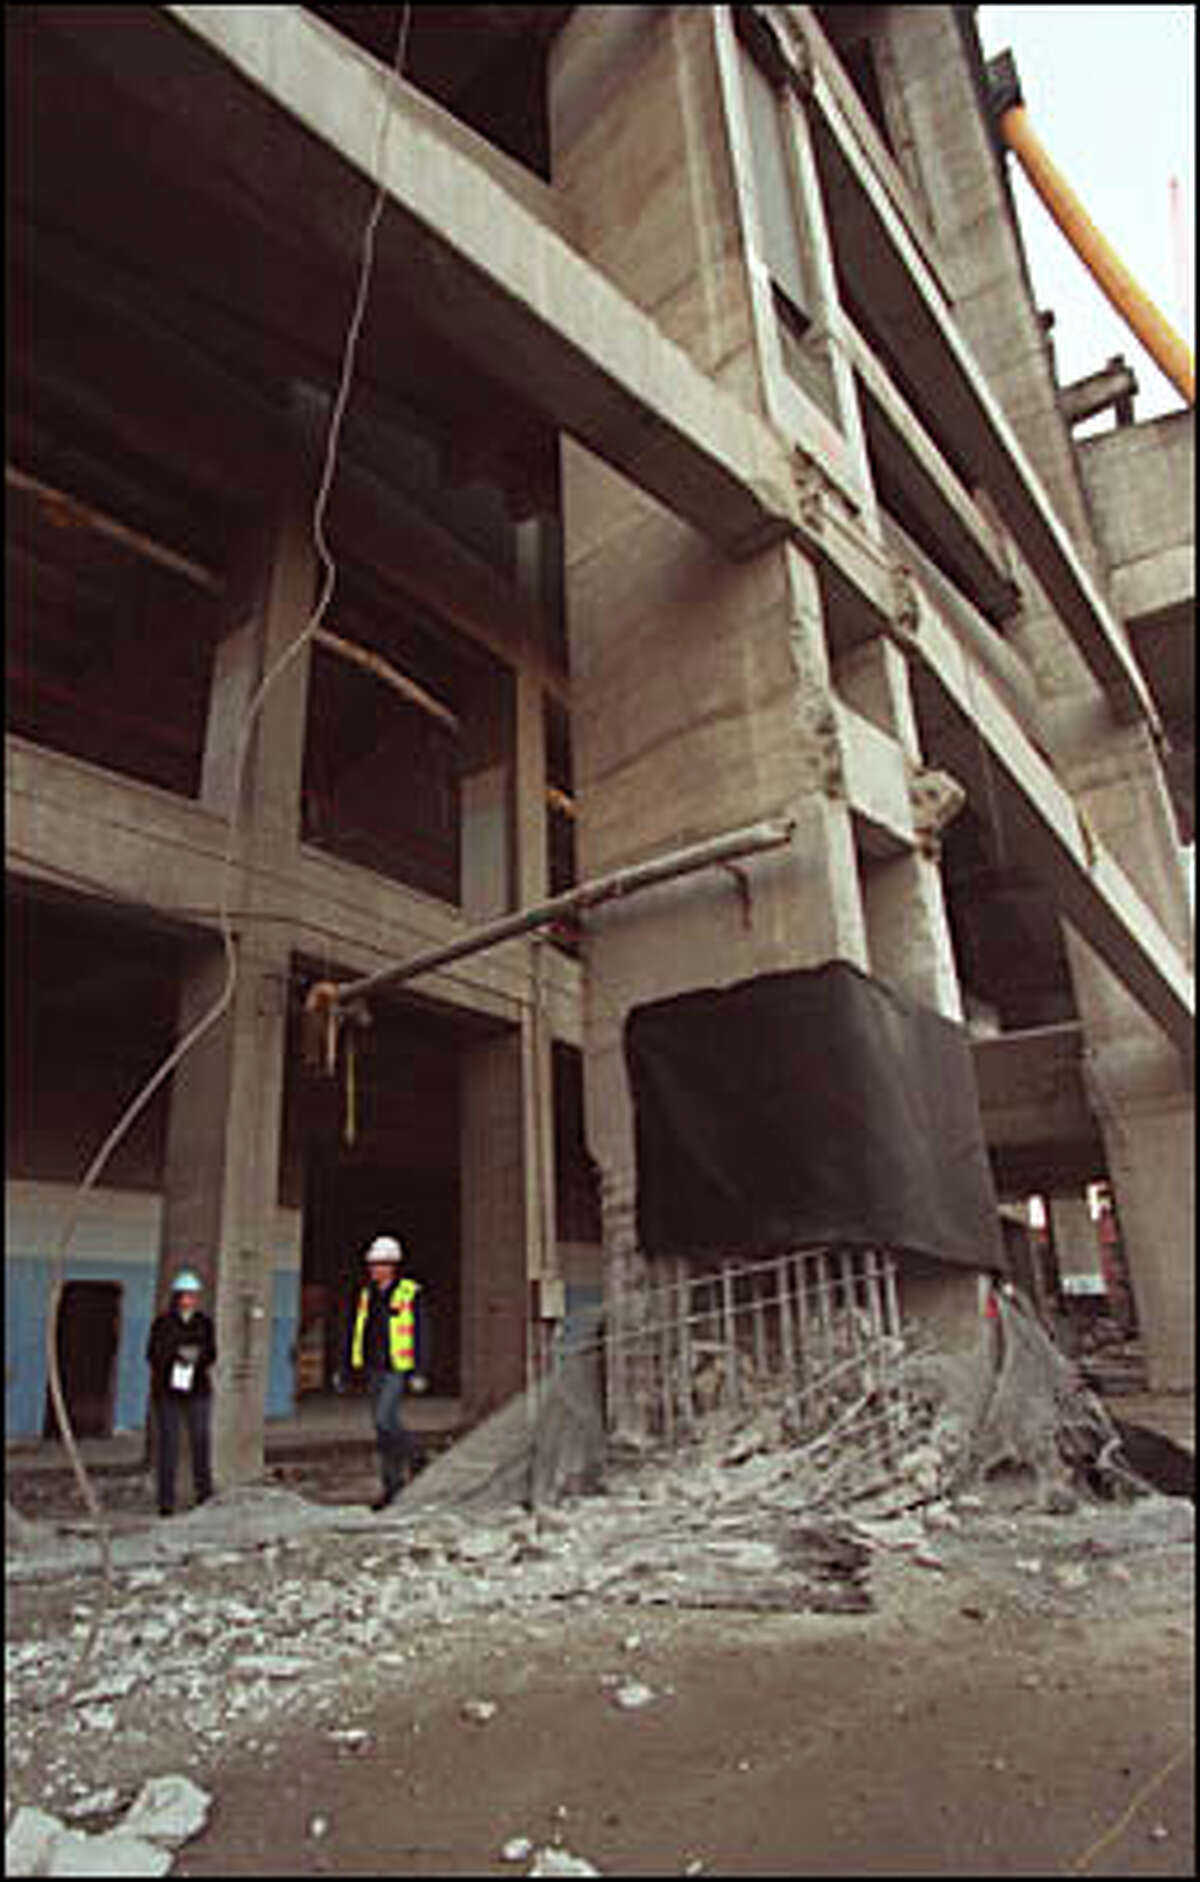 On Feb. 23, contractors conducted a test to see how much explosive would be needed to strip the concrete away from the massive rebar which helps support the Kingdome.